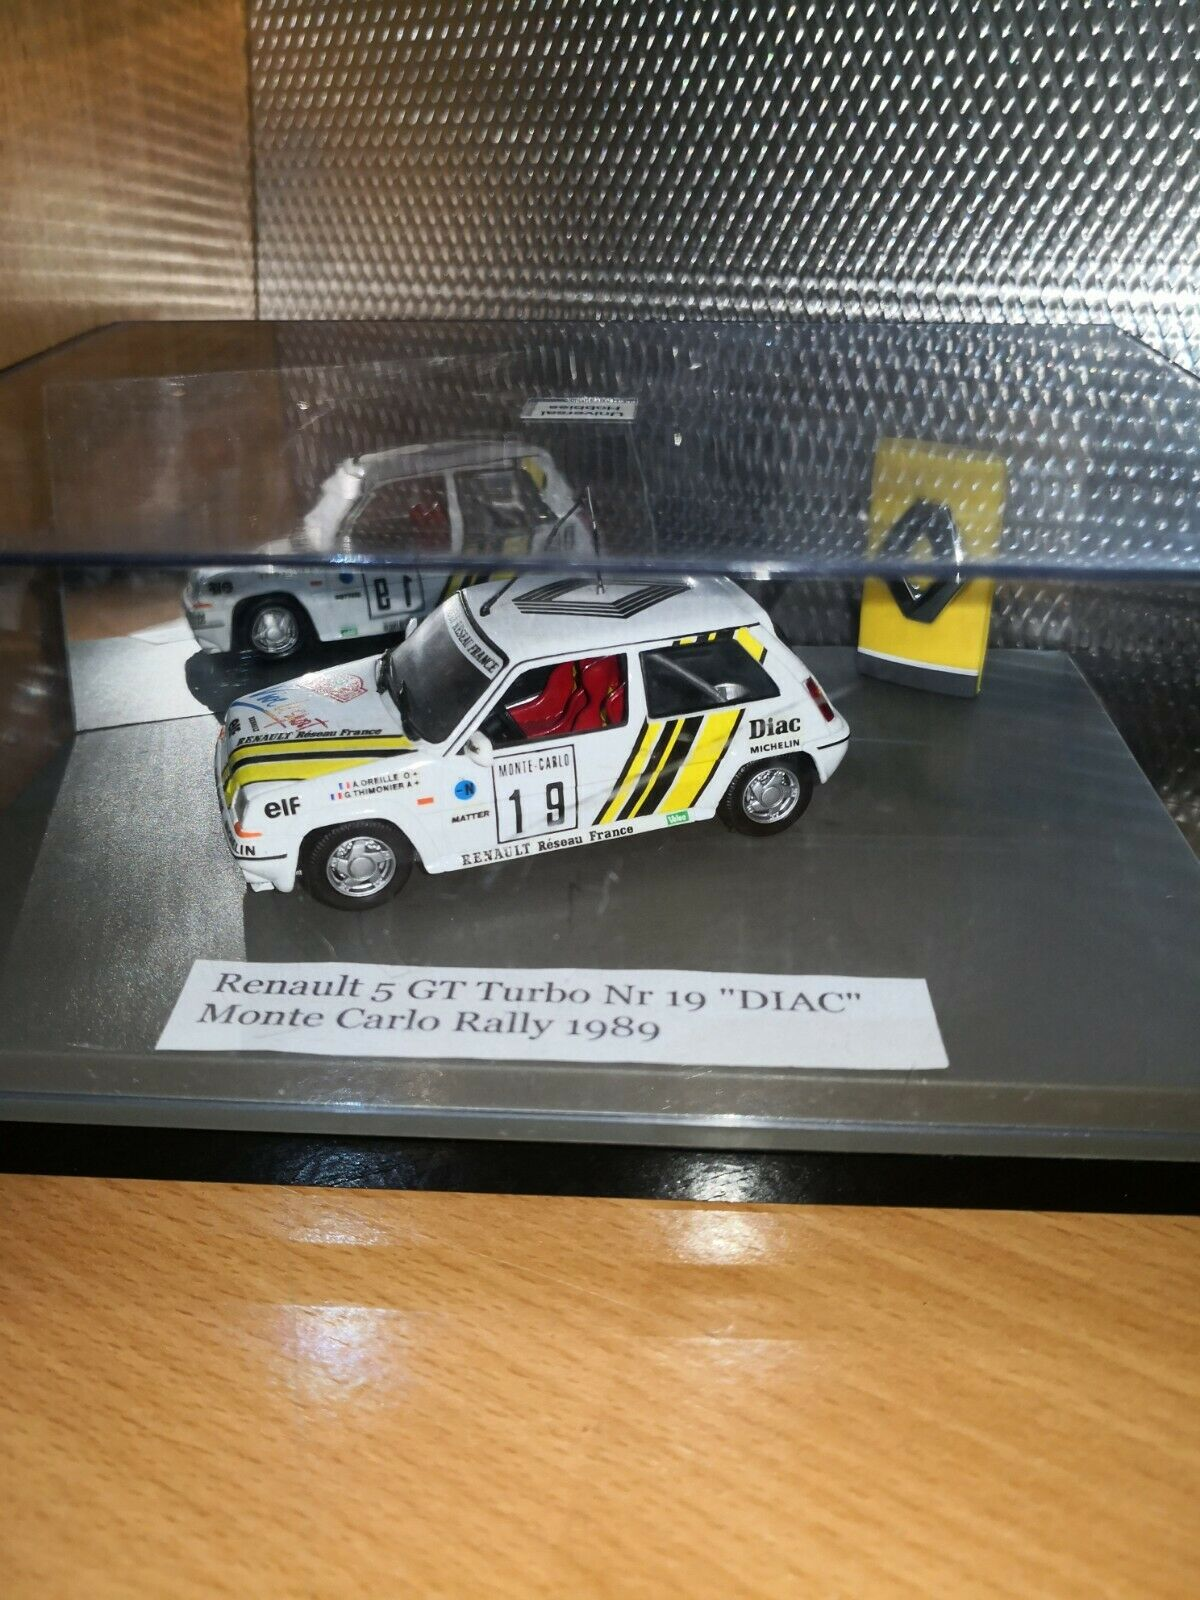 Renault 5 gt turbo N 19  Diac uh 1 43